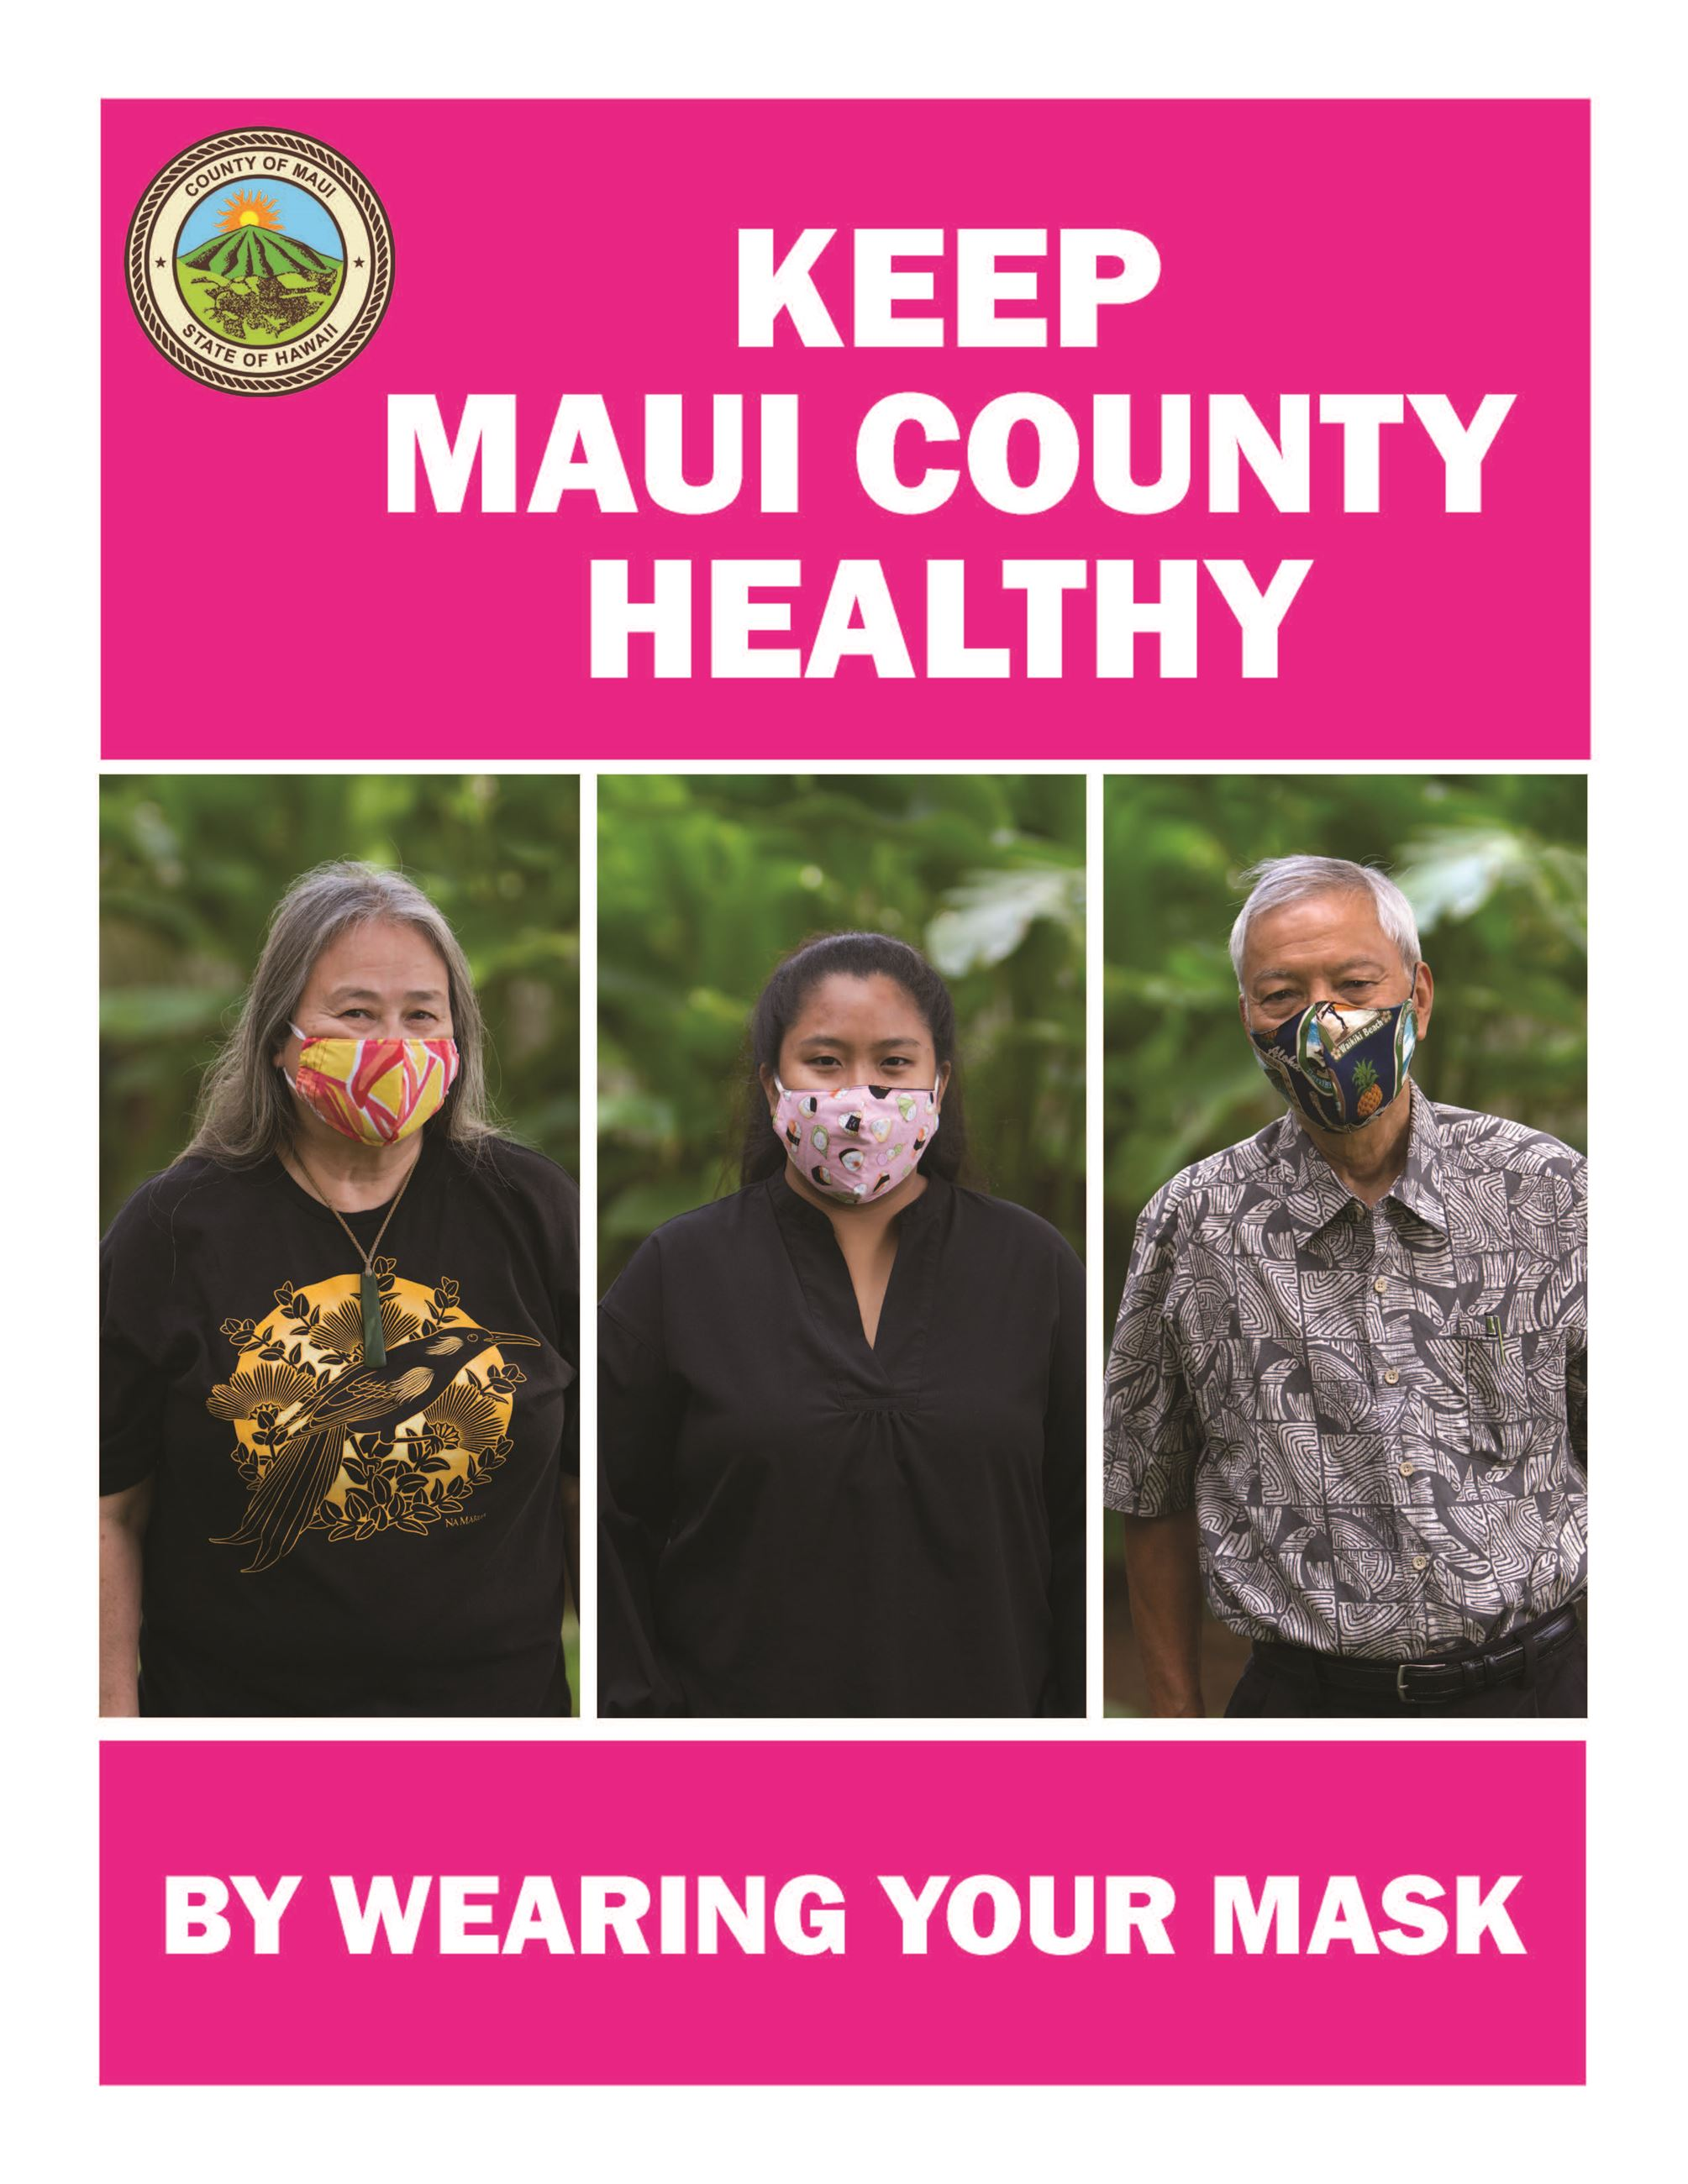 Covid Keep Maui County Healthy by Wearing Your Mask